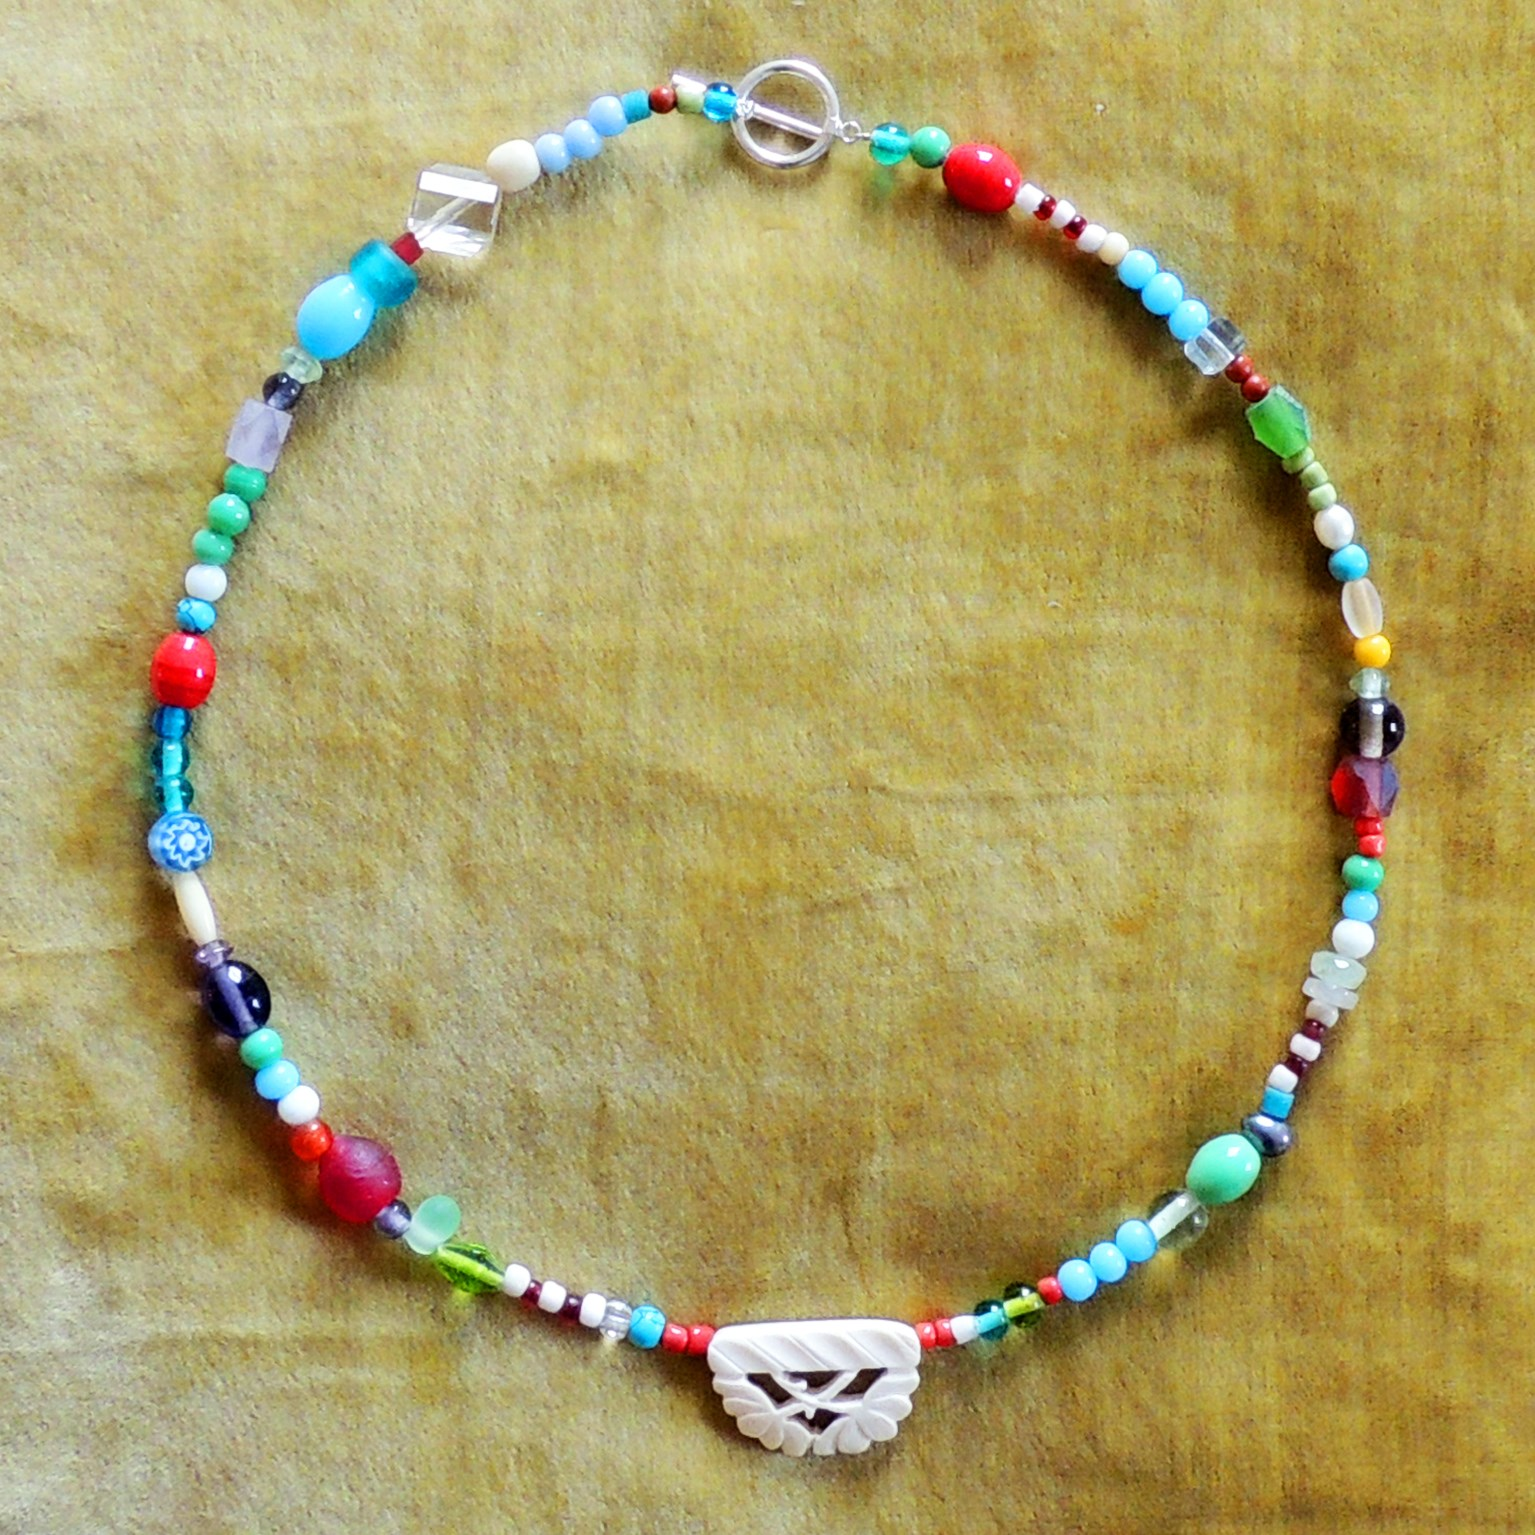 Gifts Beaded Necklace With Carved Bone Bead Kali Stileman Publishing